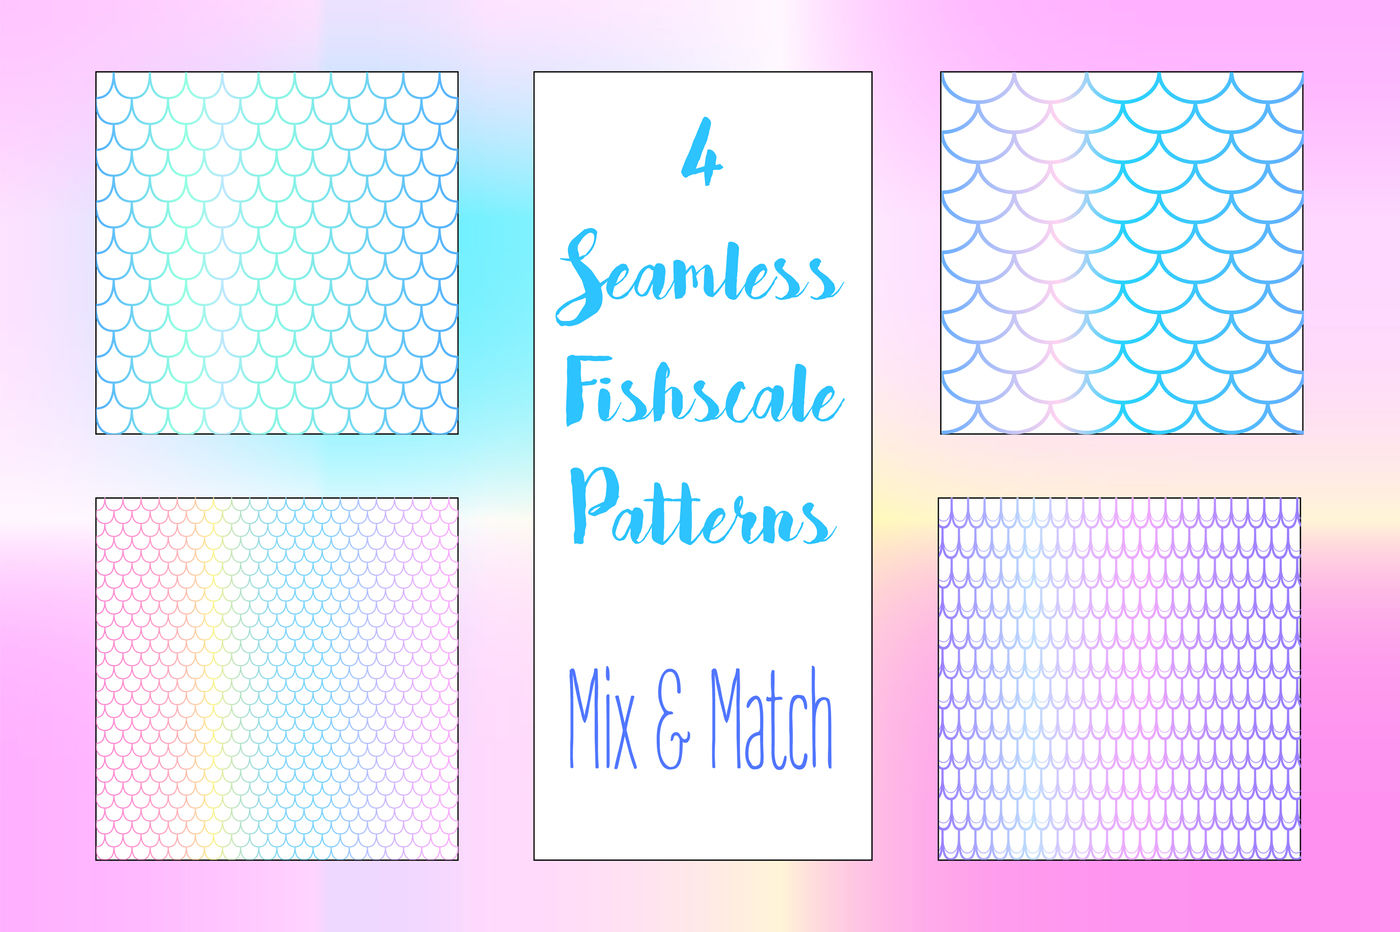 Mermaid Seamless Pattern Background By Rabbit And Pencil